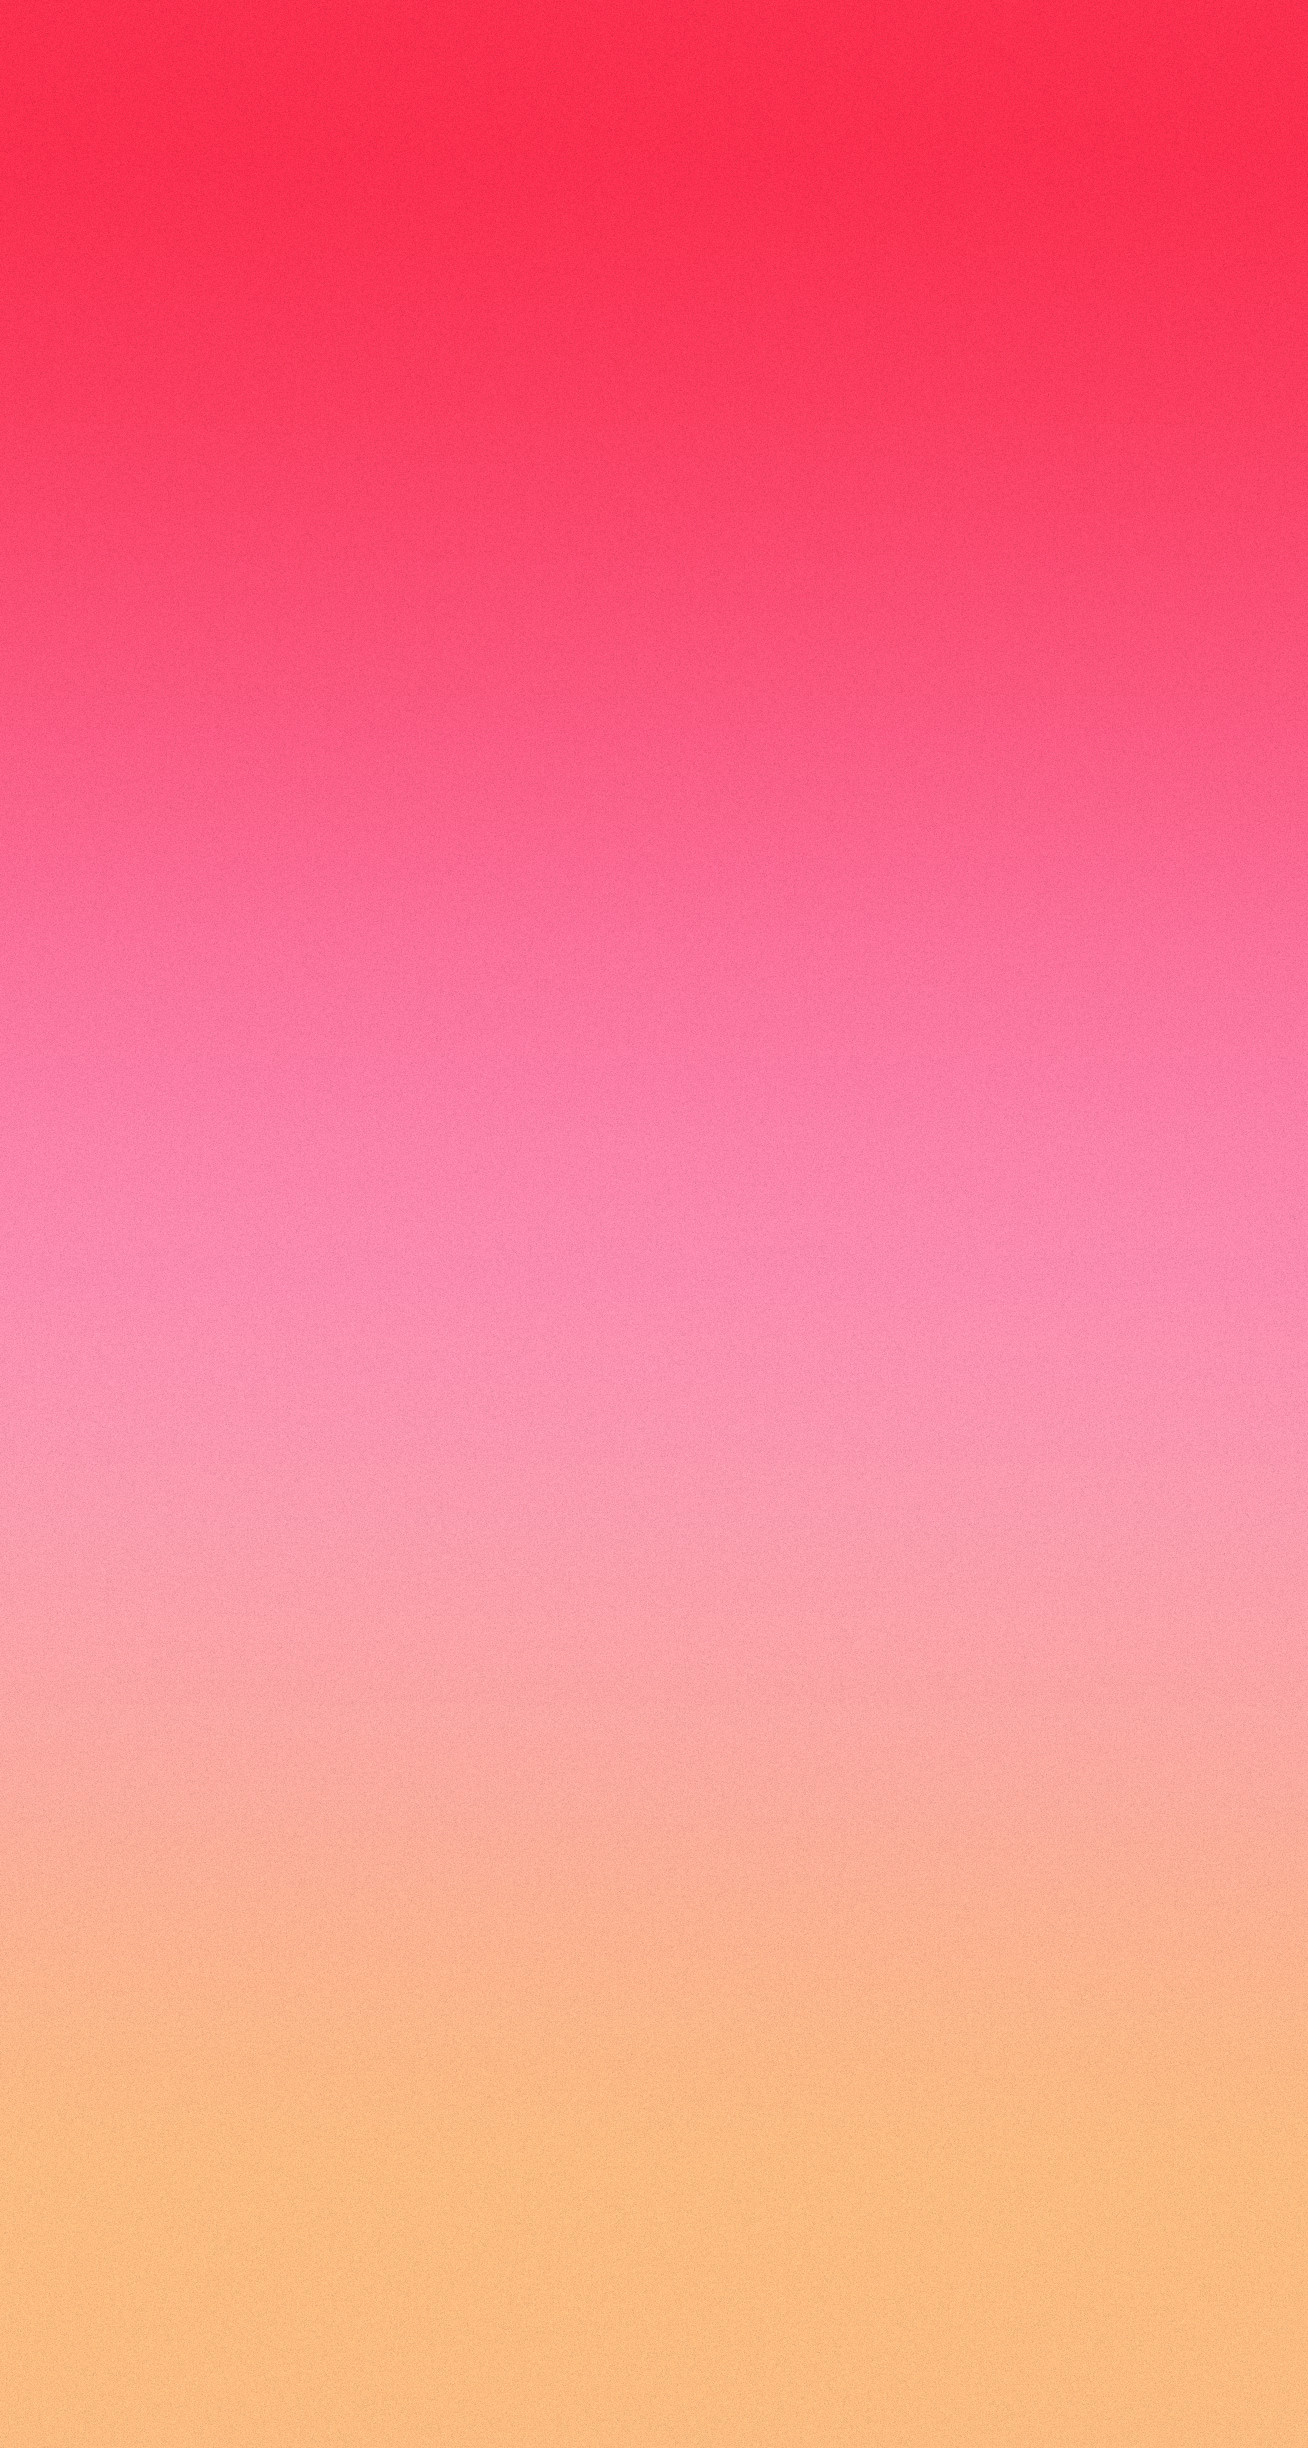 Pink Ombre Wallpaper 60 images 1308x2448